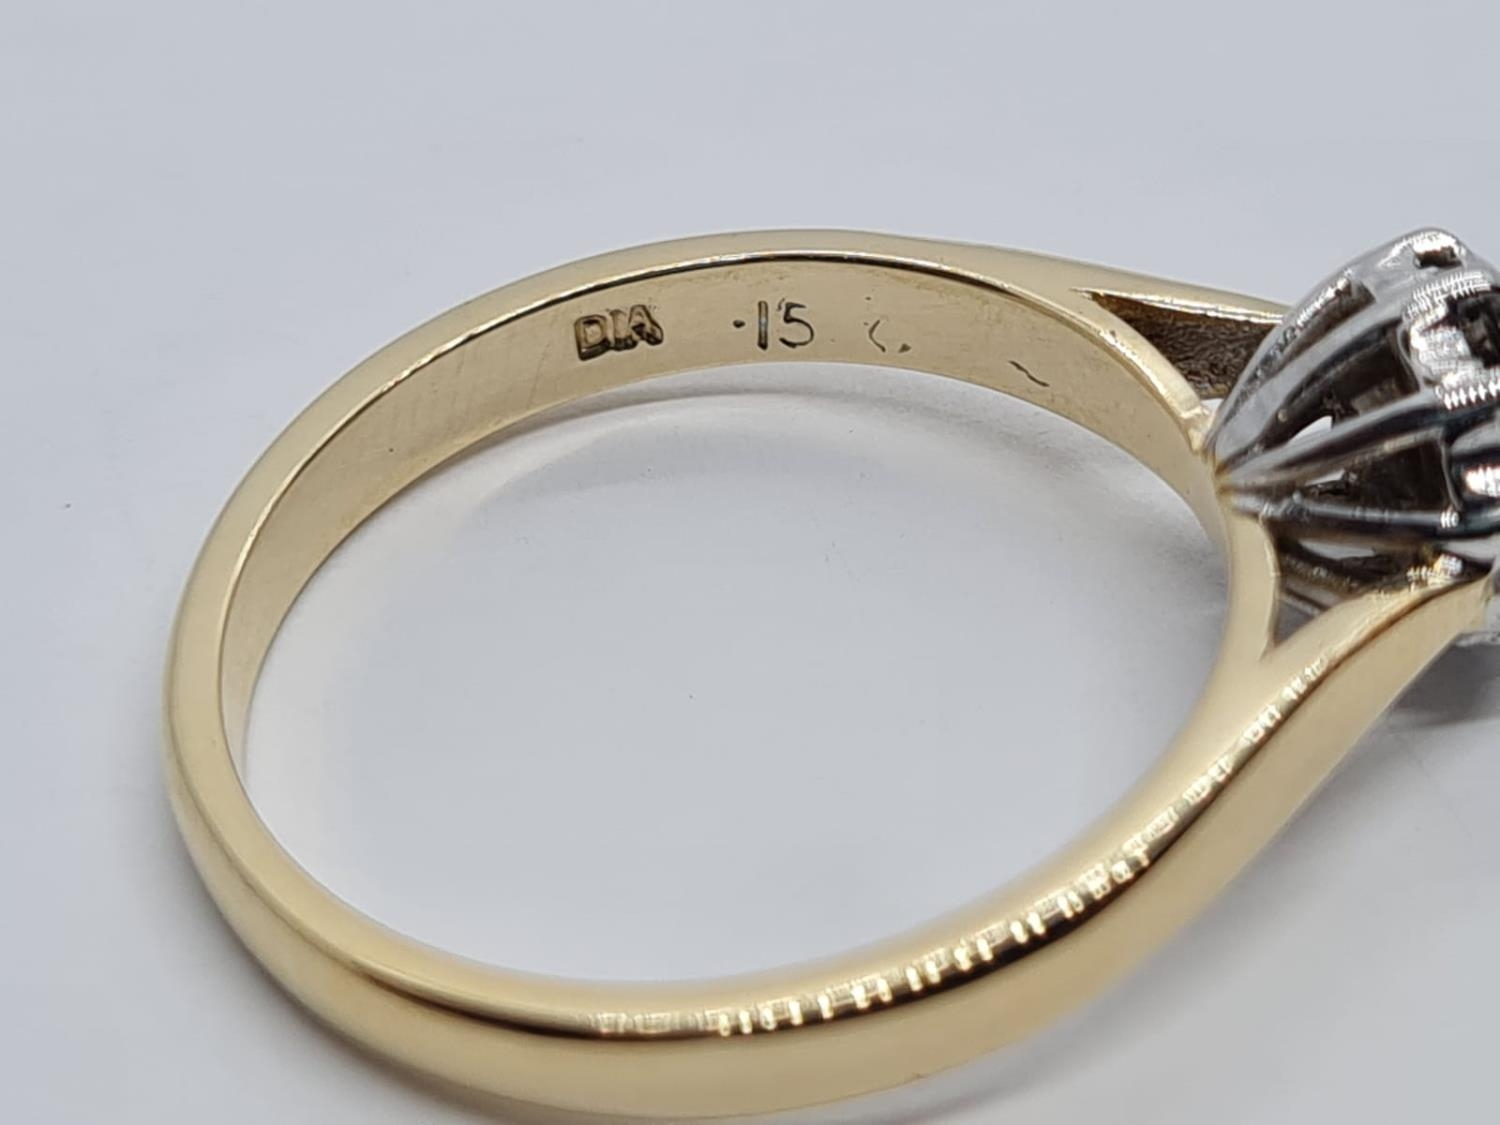 9K YELLOW GOLD DIAMOND SET CLUSTER VINTAGE RING 0.15CT DIAMONDS APPROX WEIGHT 2.6G SIZE N - Image 4 of 5